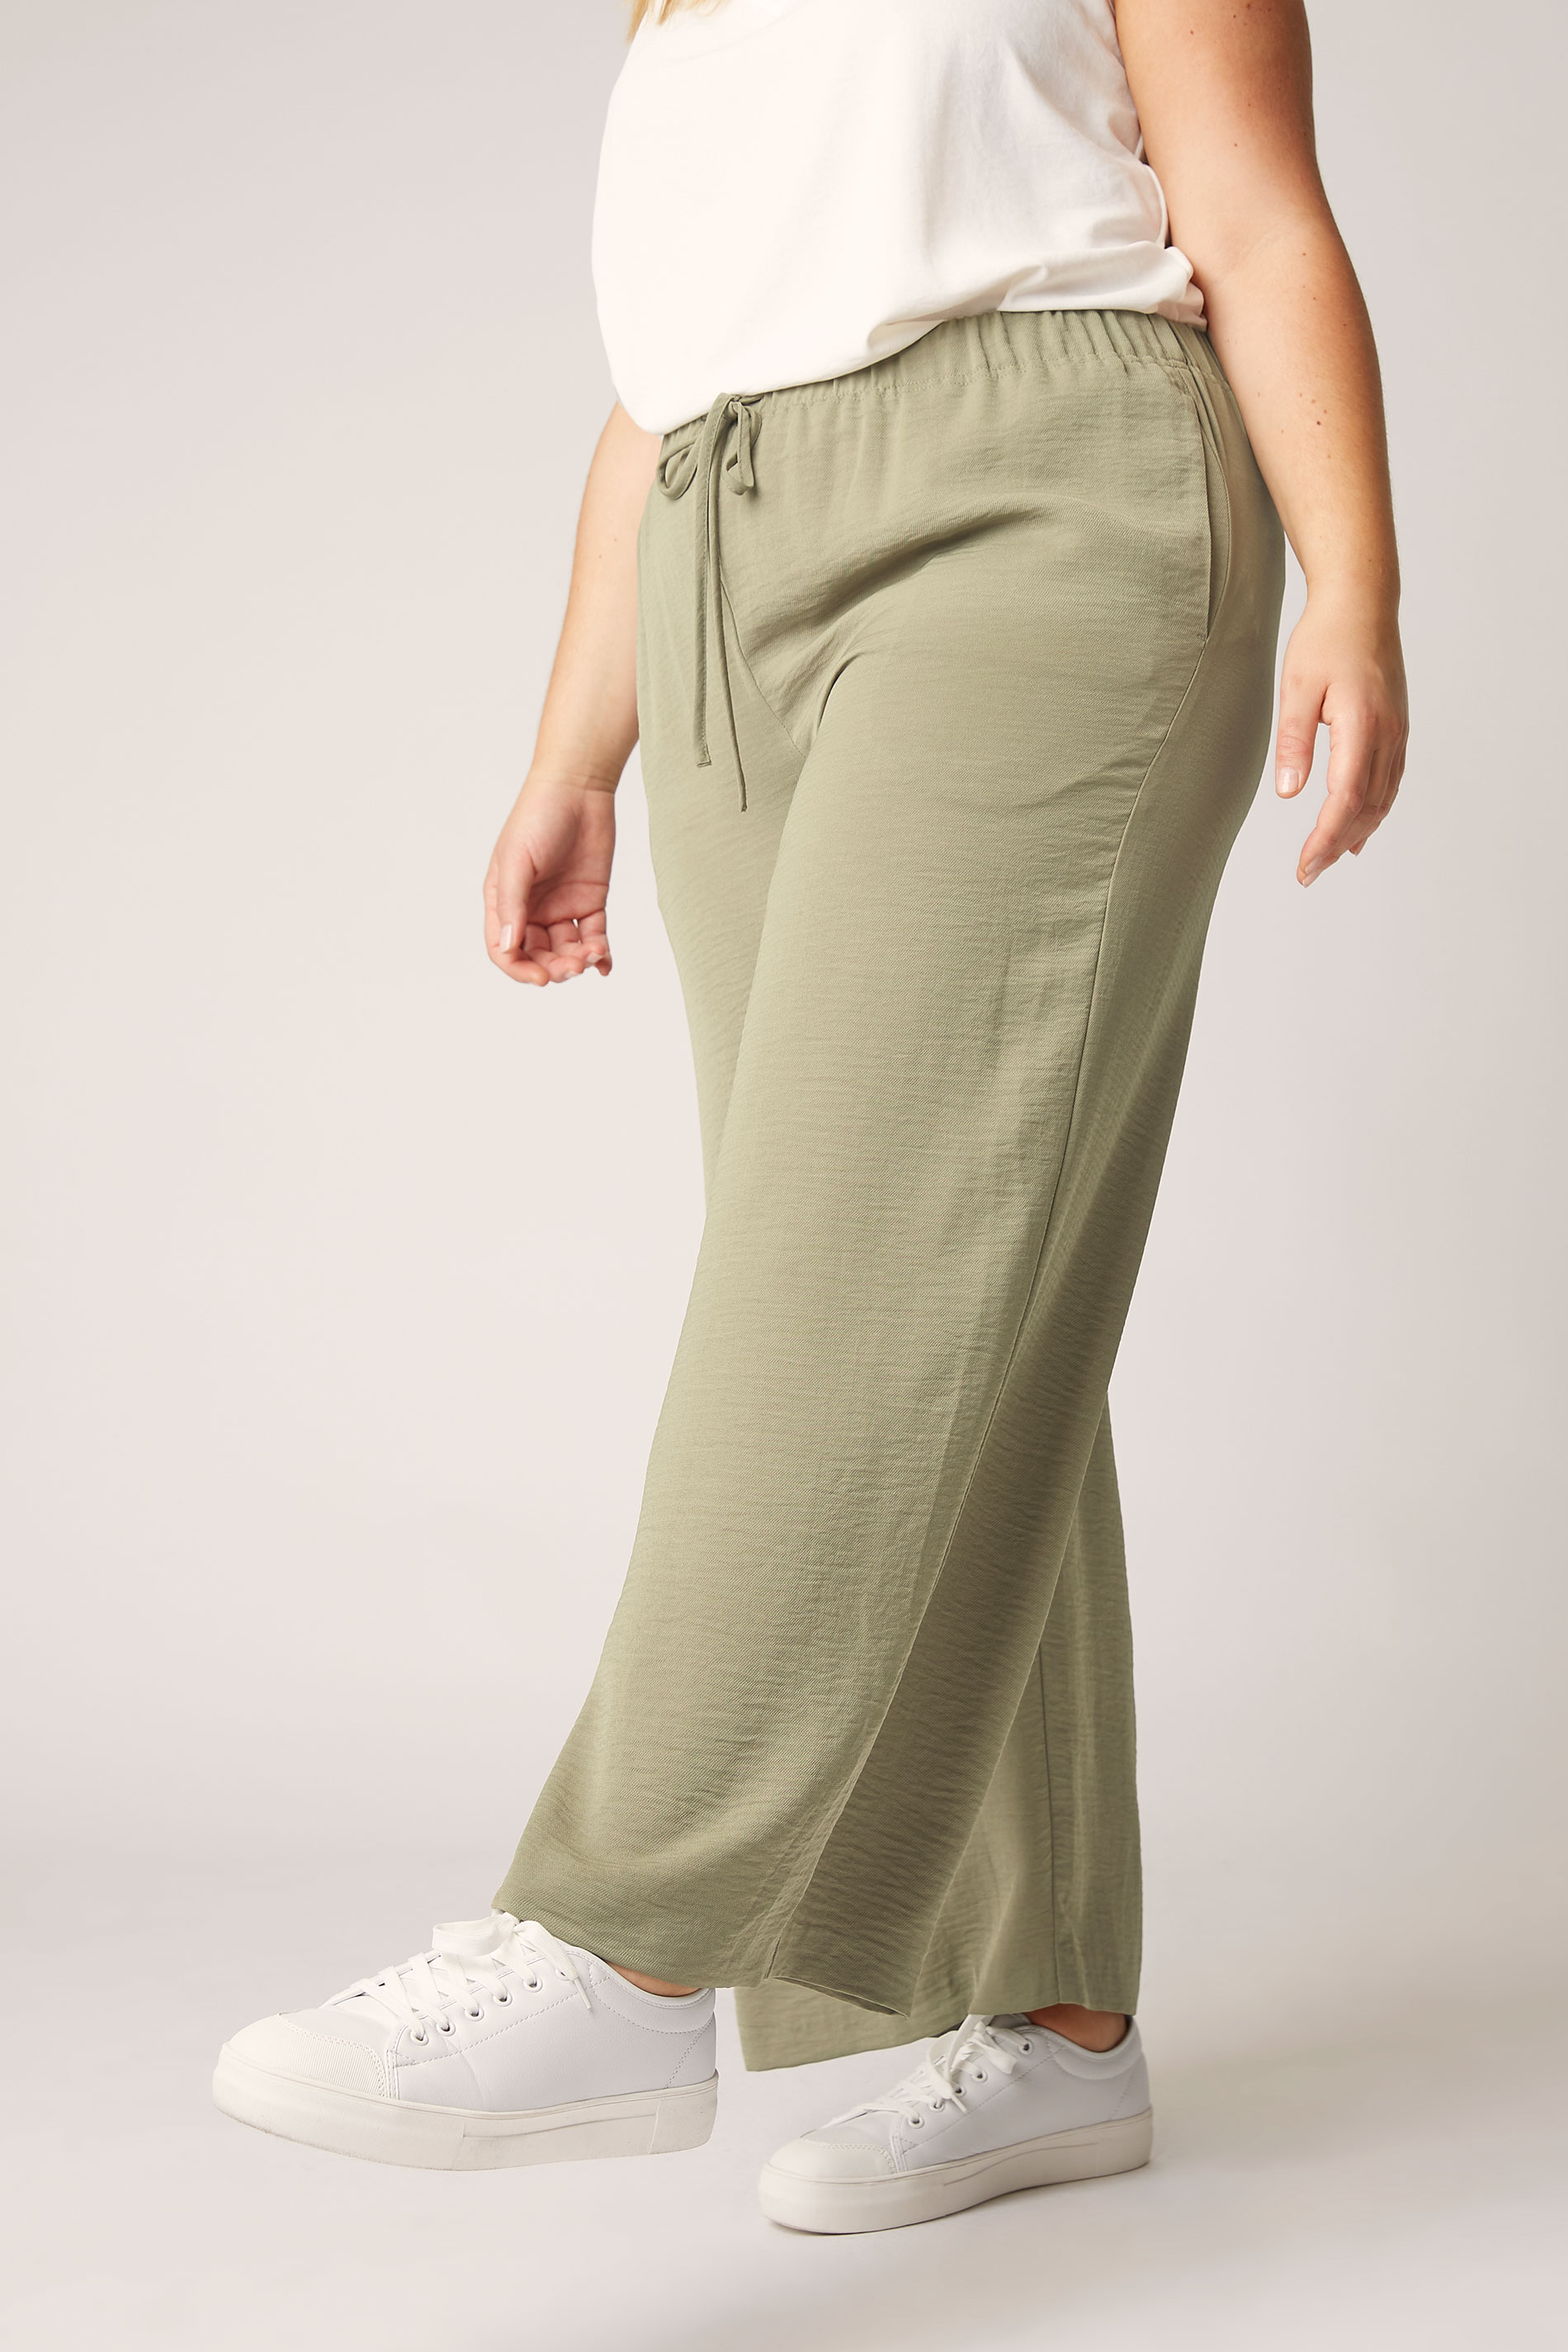 THE LIMITED EDIT Olive Green Wide Leg Trousers_B.jpg